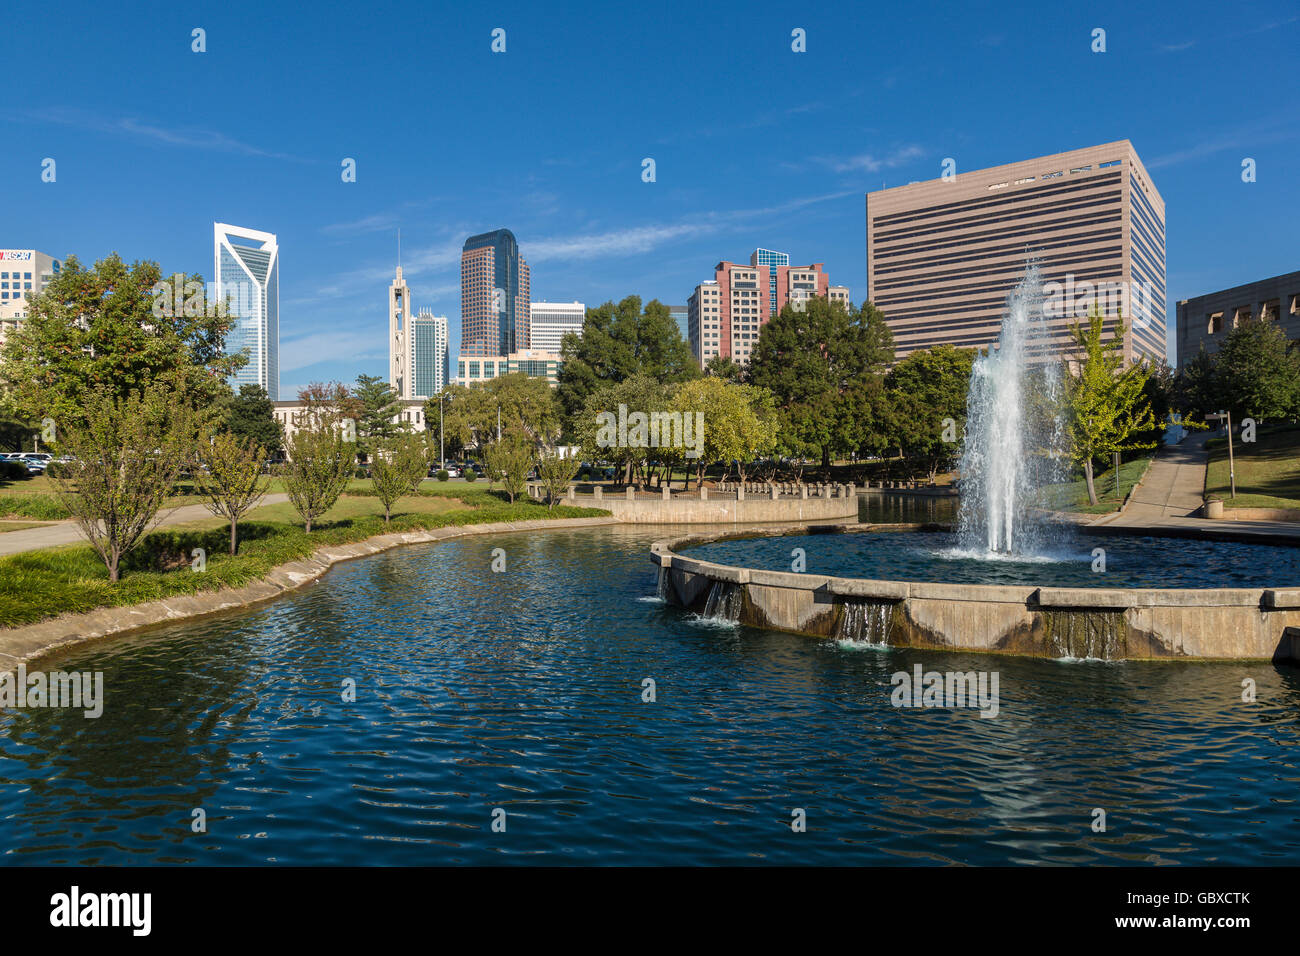 Charlotte skyline and water fountain, NC, USA - Stock Image